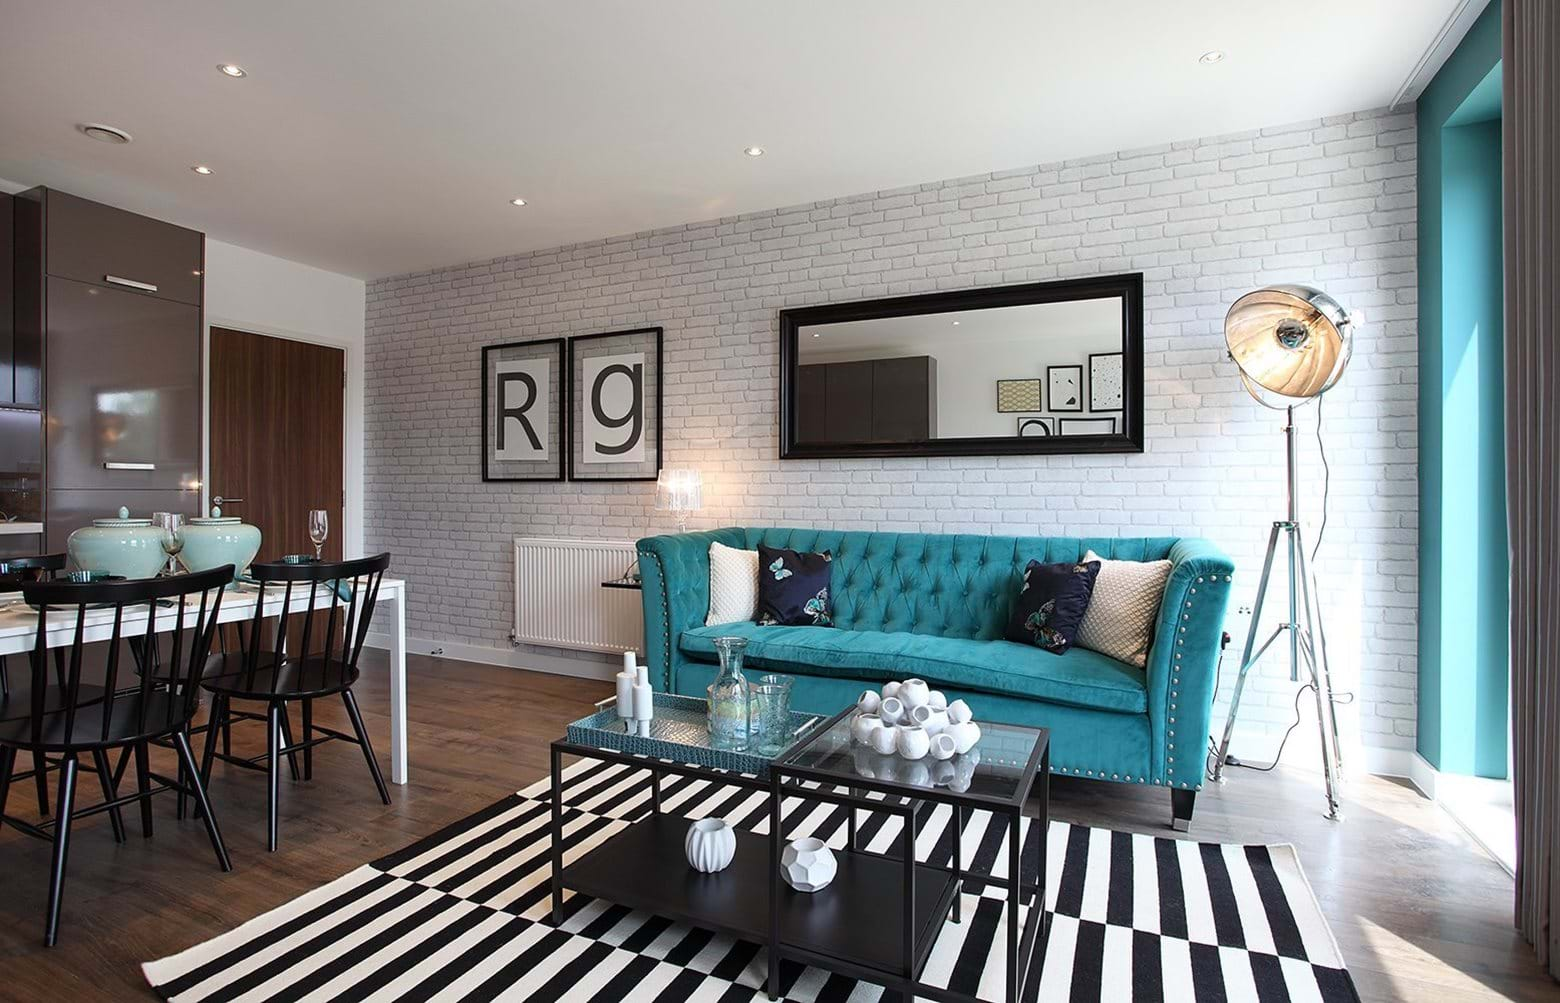 Show home living room at Canons Row